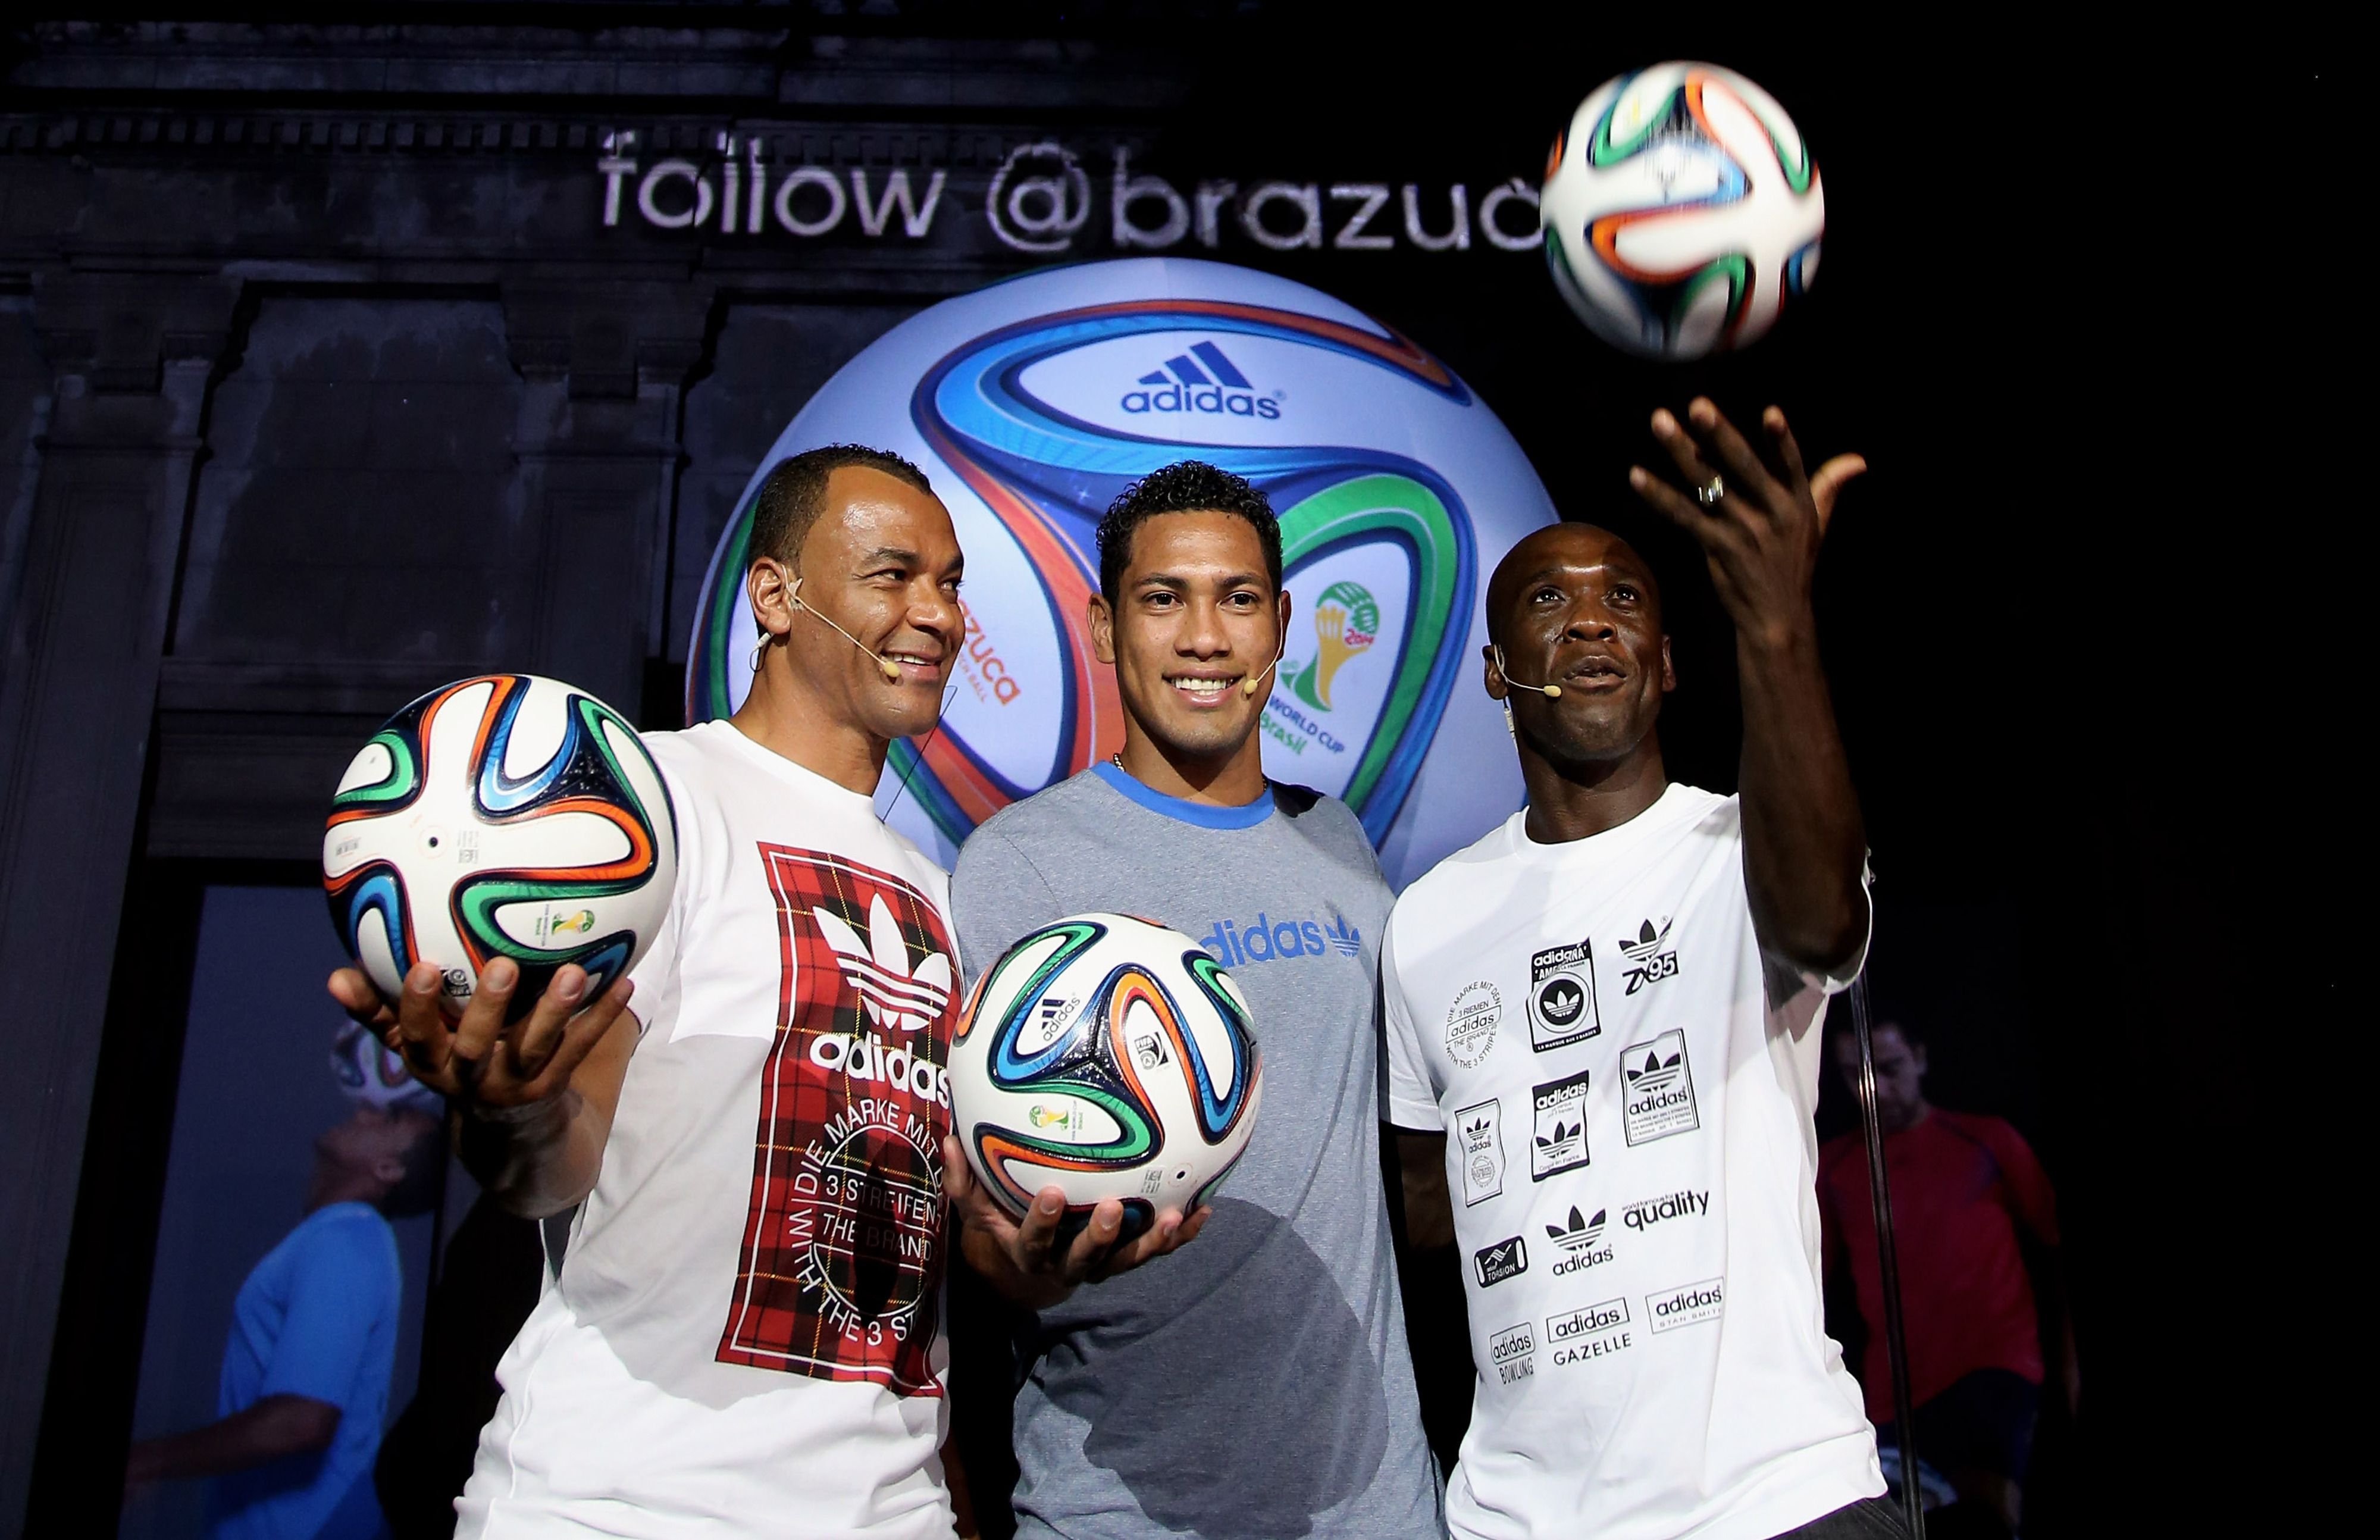 Camera-filled brazuca to go around the world in less than 80 days